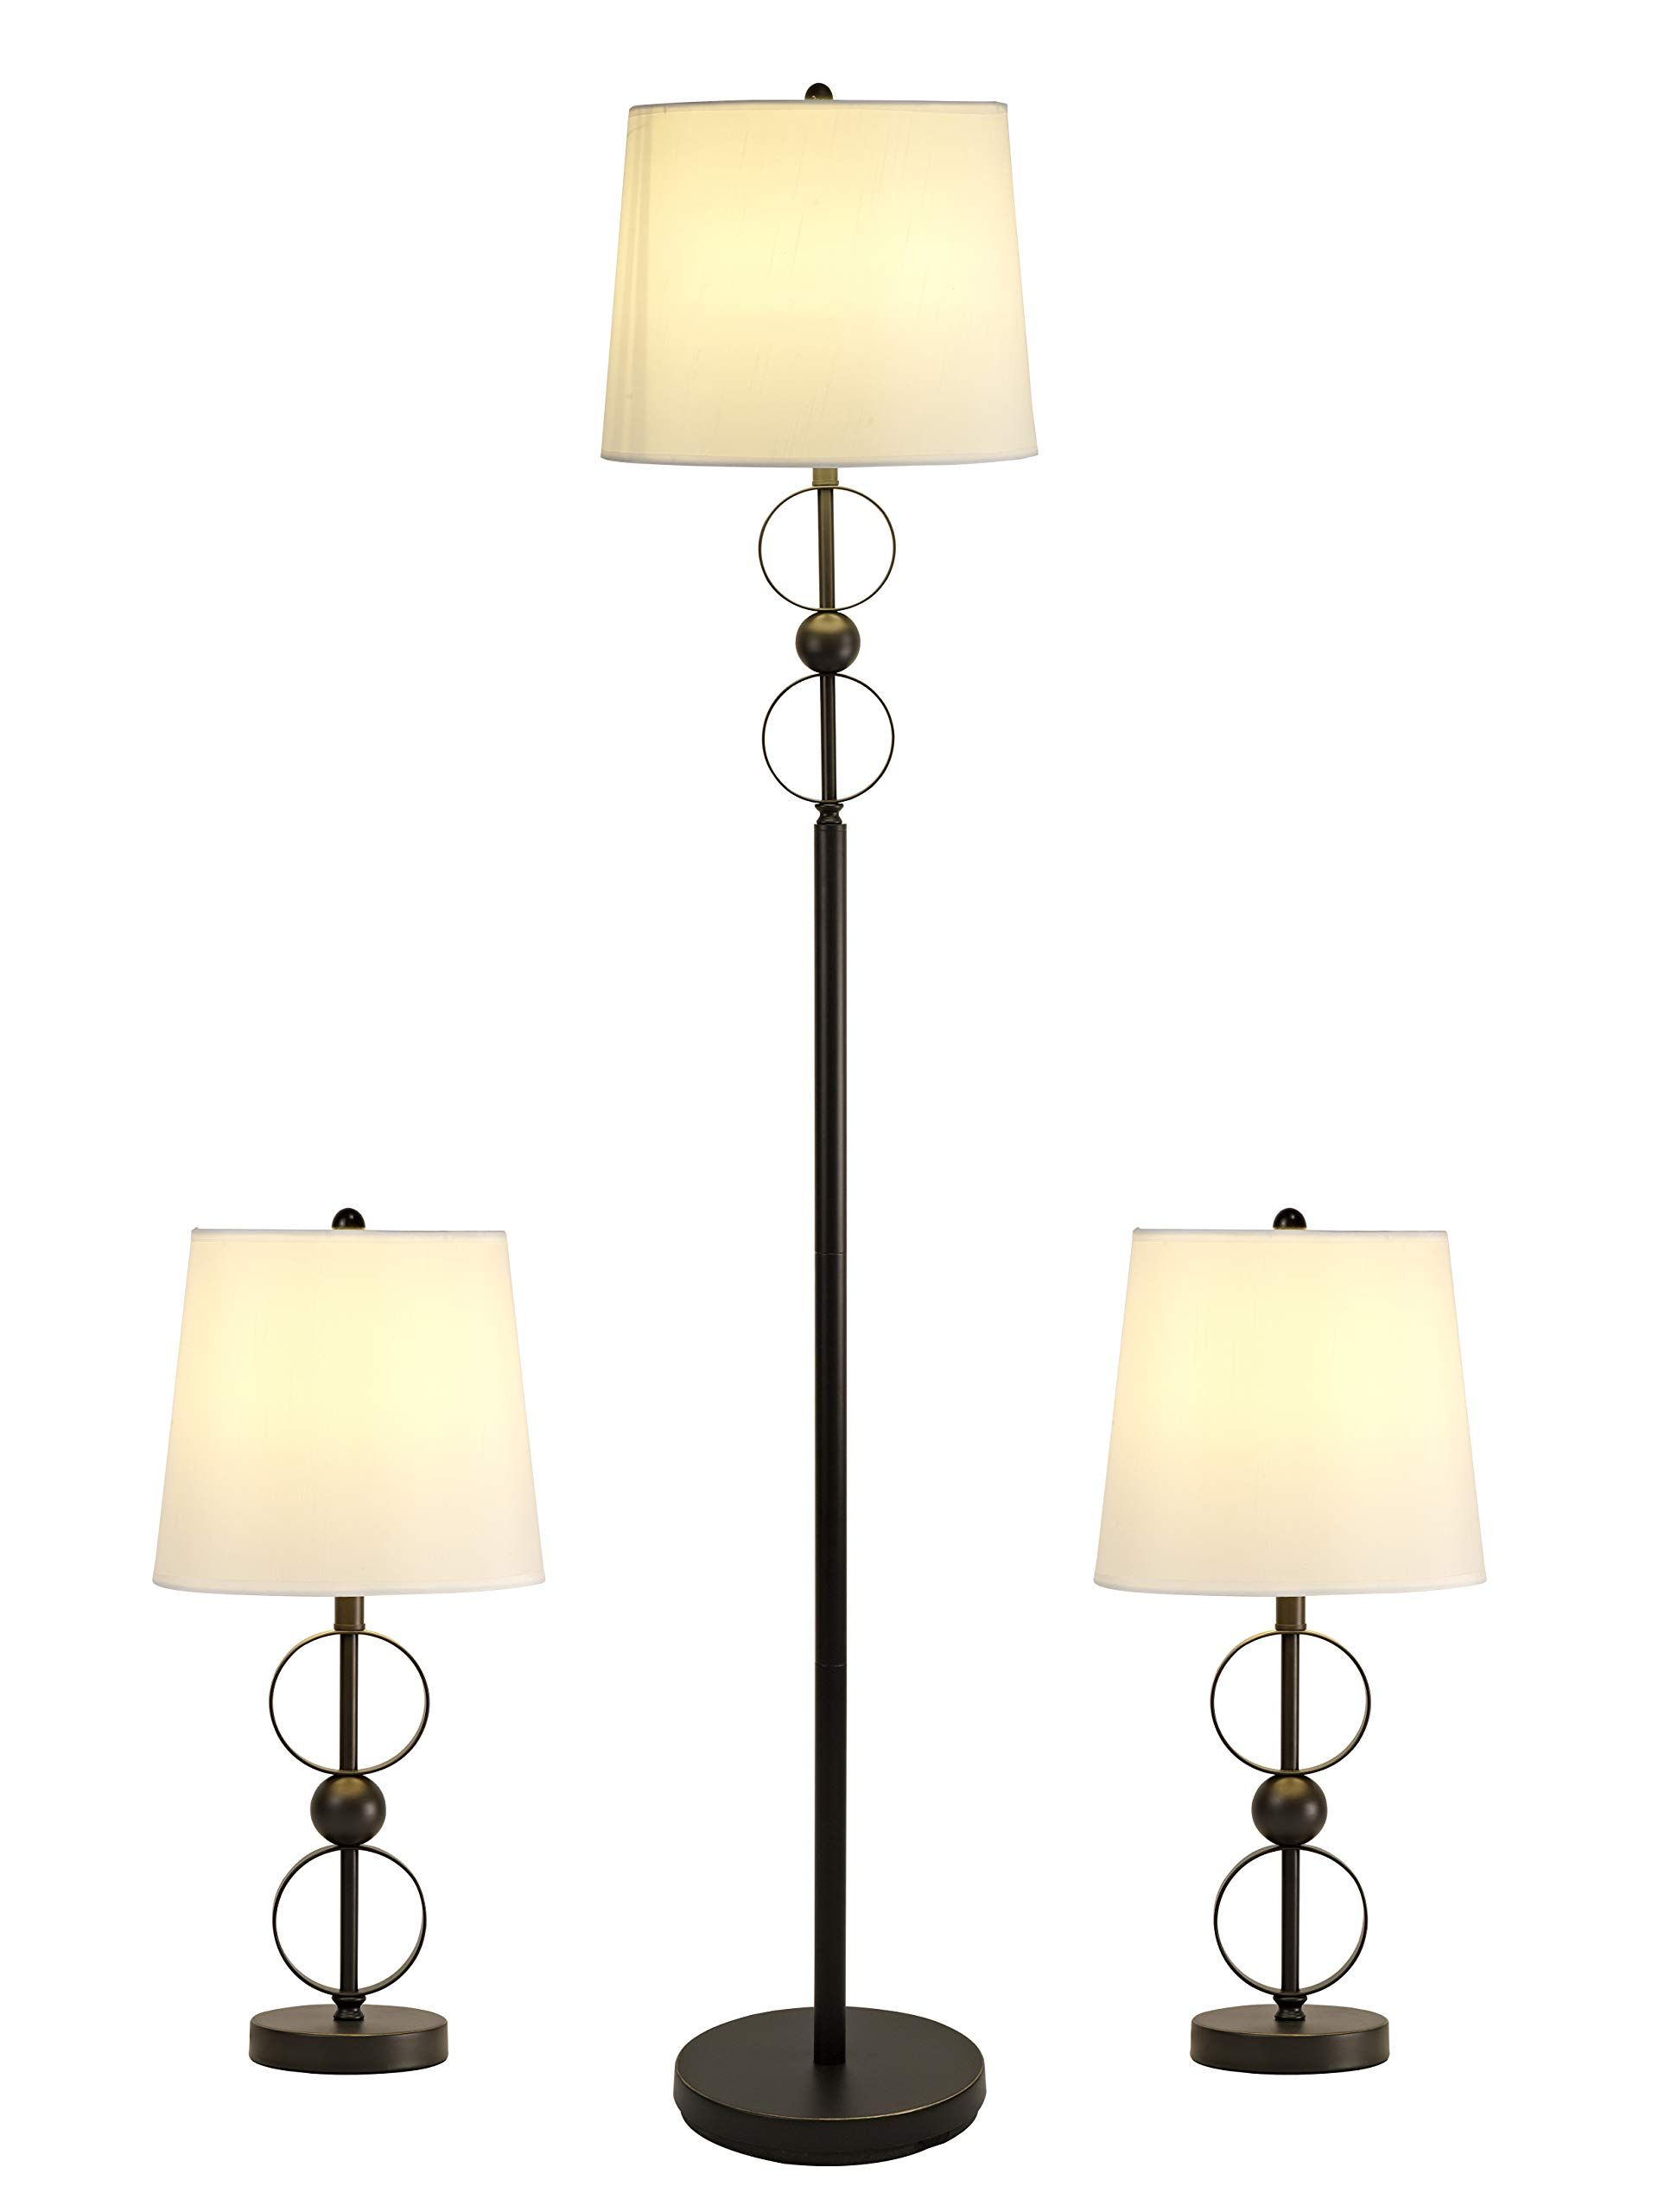 Smeike Three Pack Lamp Set 2 Table Lamps 1 Floor Lamp Modern Lamp Sets Of 3 With White Fabric Shades Metal Floor Lamp And In 2020 Modern Lamp Lamp Modern Lamp Sets